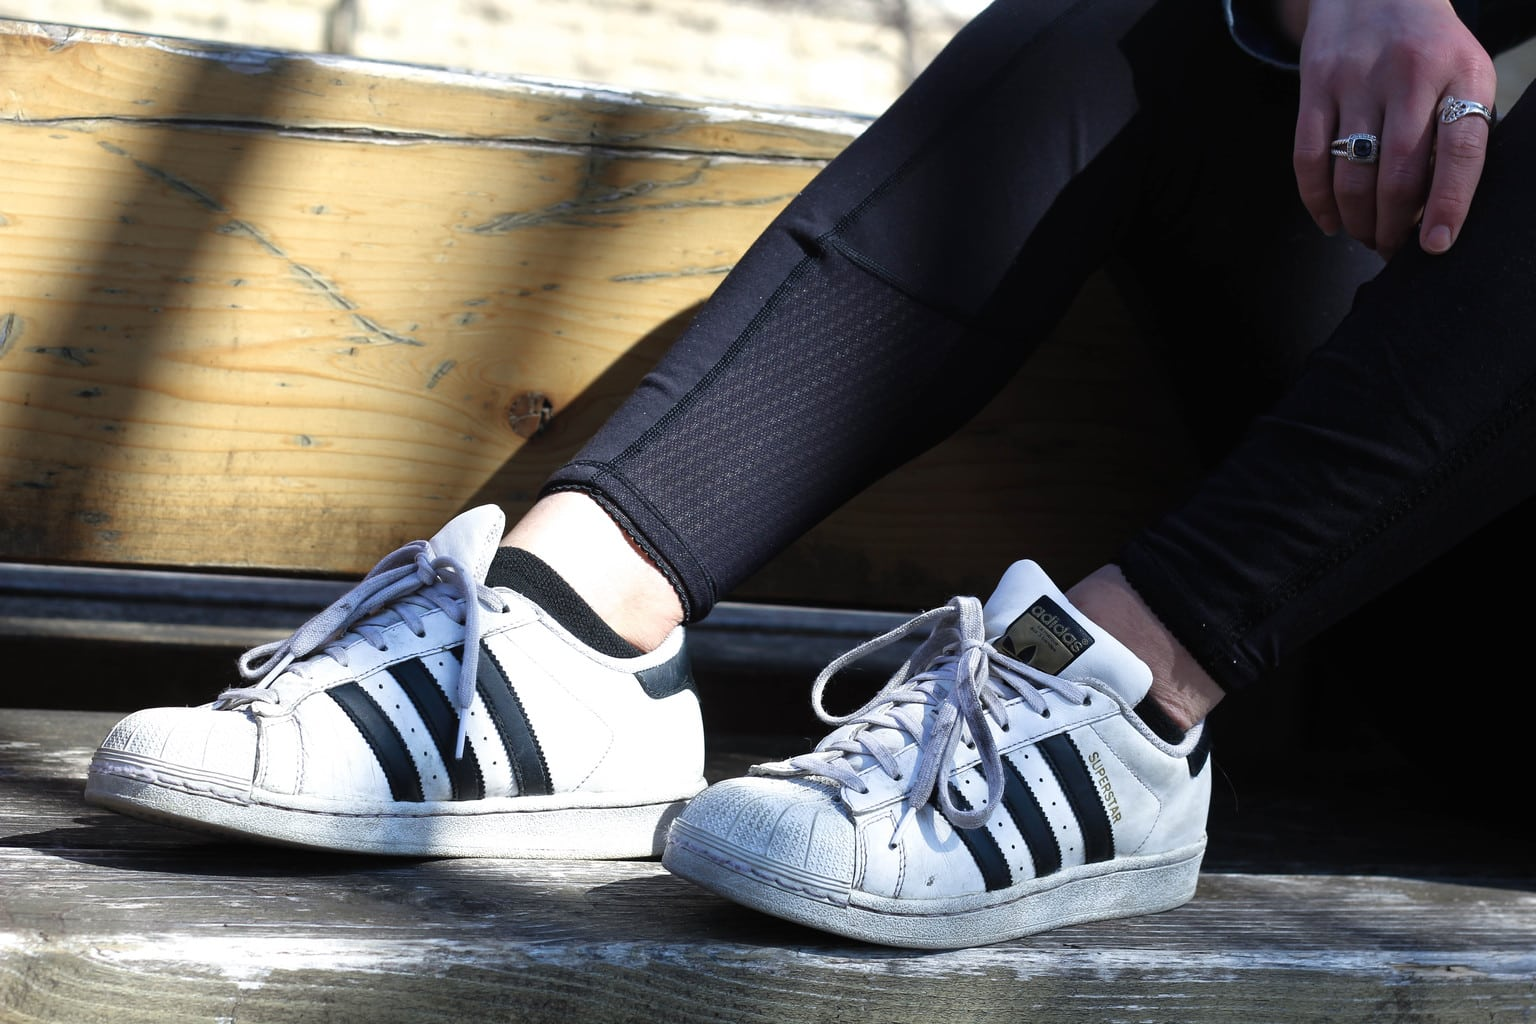 Bailey wears white and black worn-in Adidas all star sneakers with her athletic leggings.